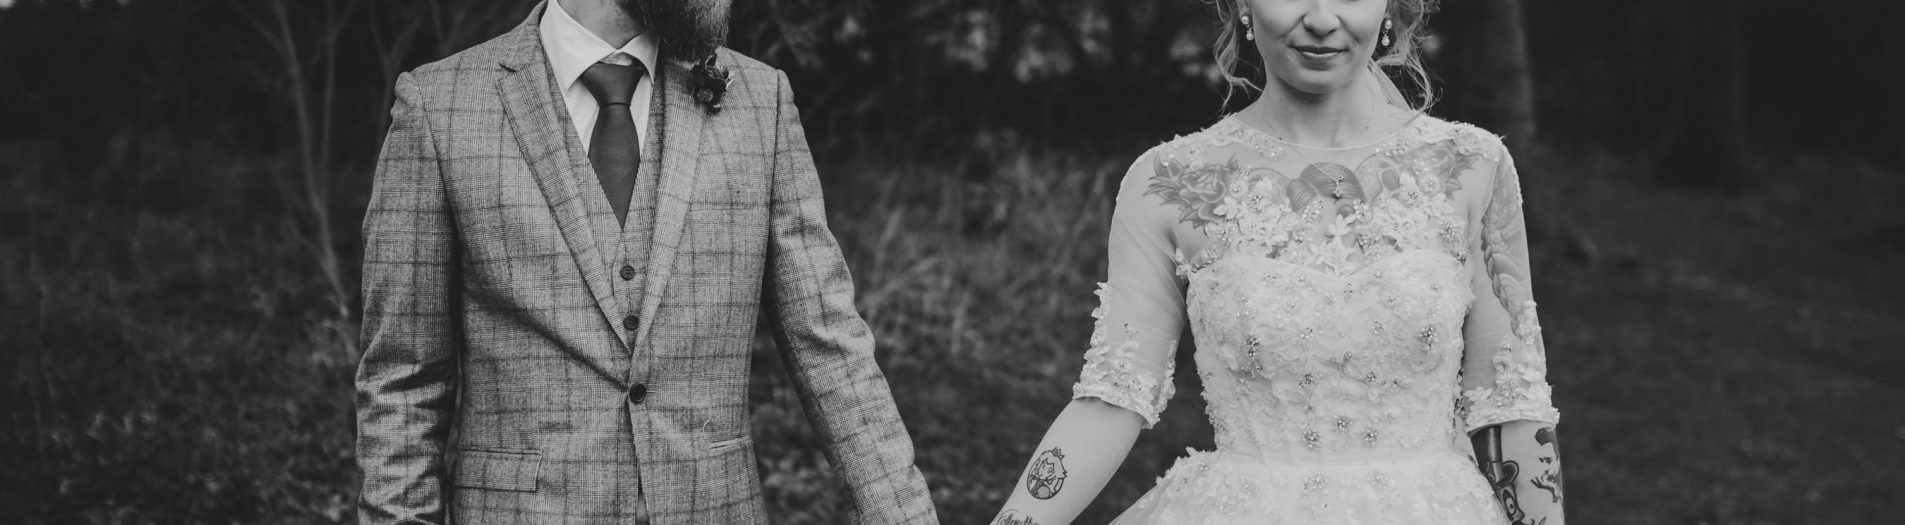 Ox Pasture Hall Wedding Photographer / Scarborough // Emma and Mike